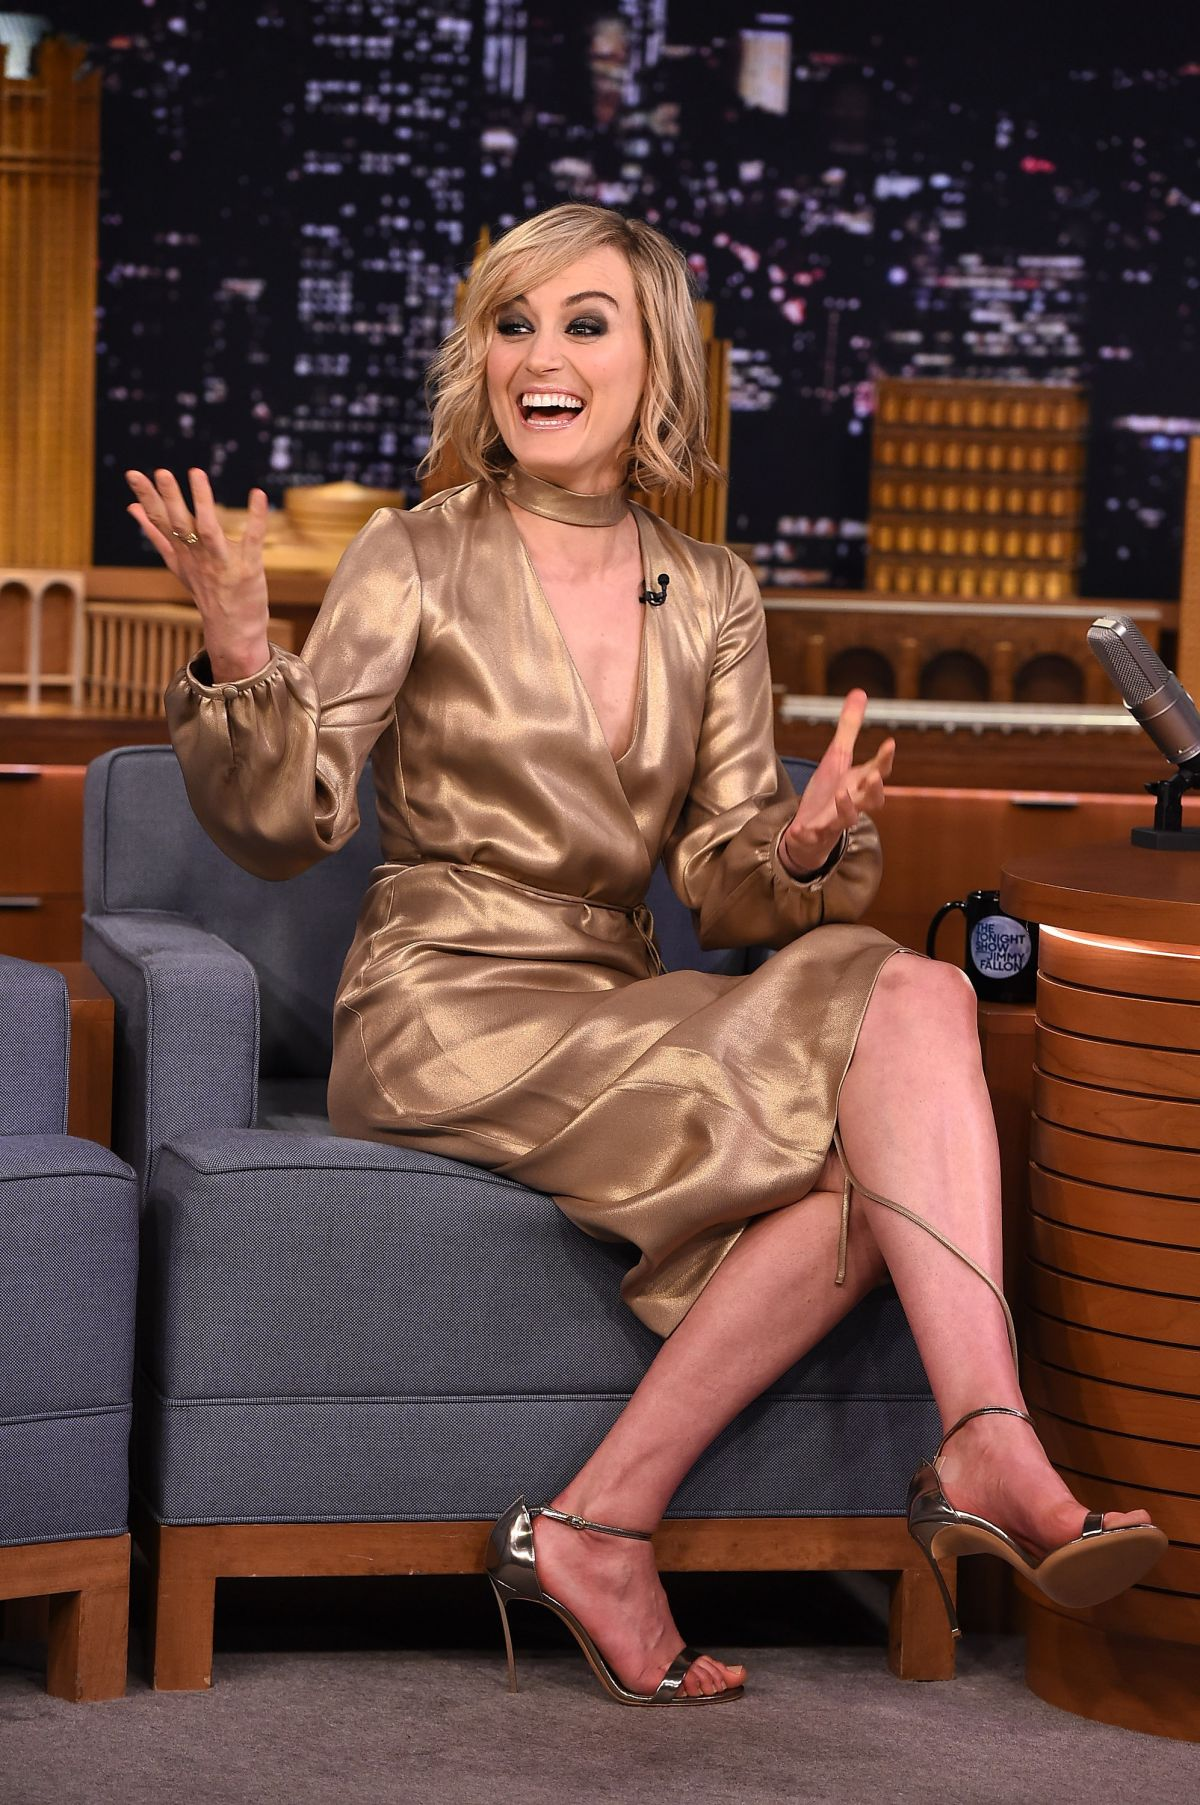 TAYLOR SCHILLING at Tonight Show Starring Jimmy Fallon in New York 06/15/2015